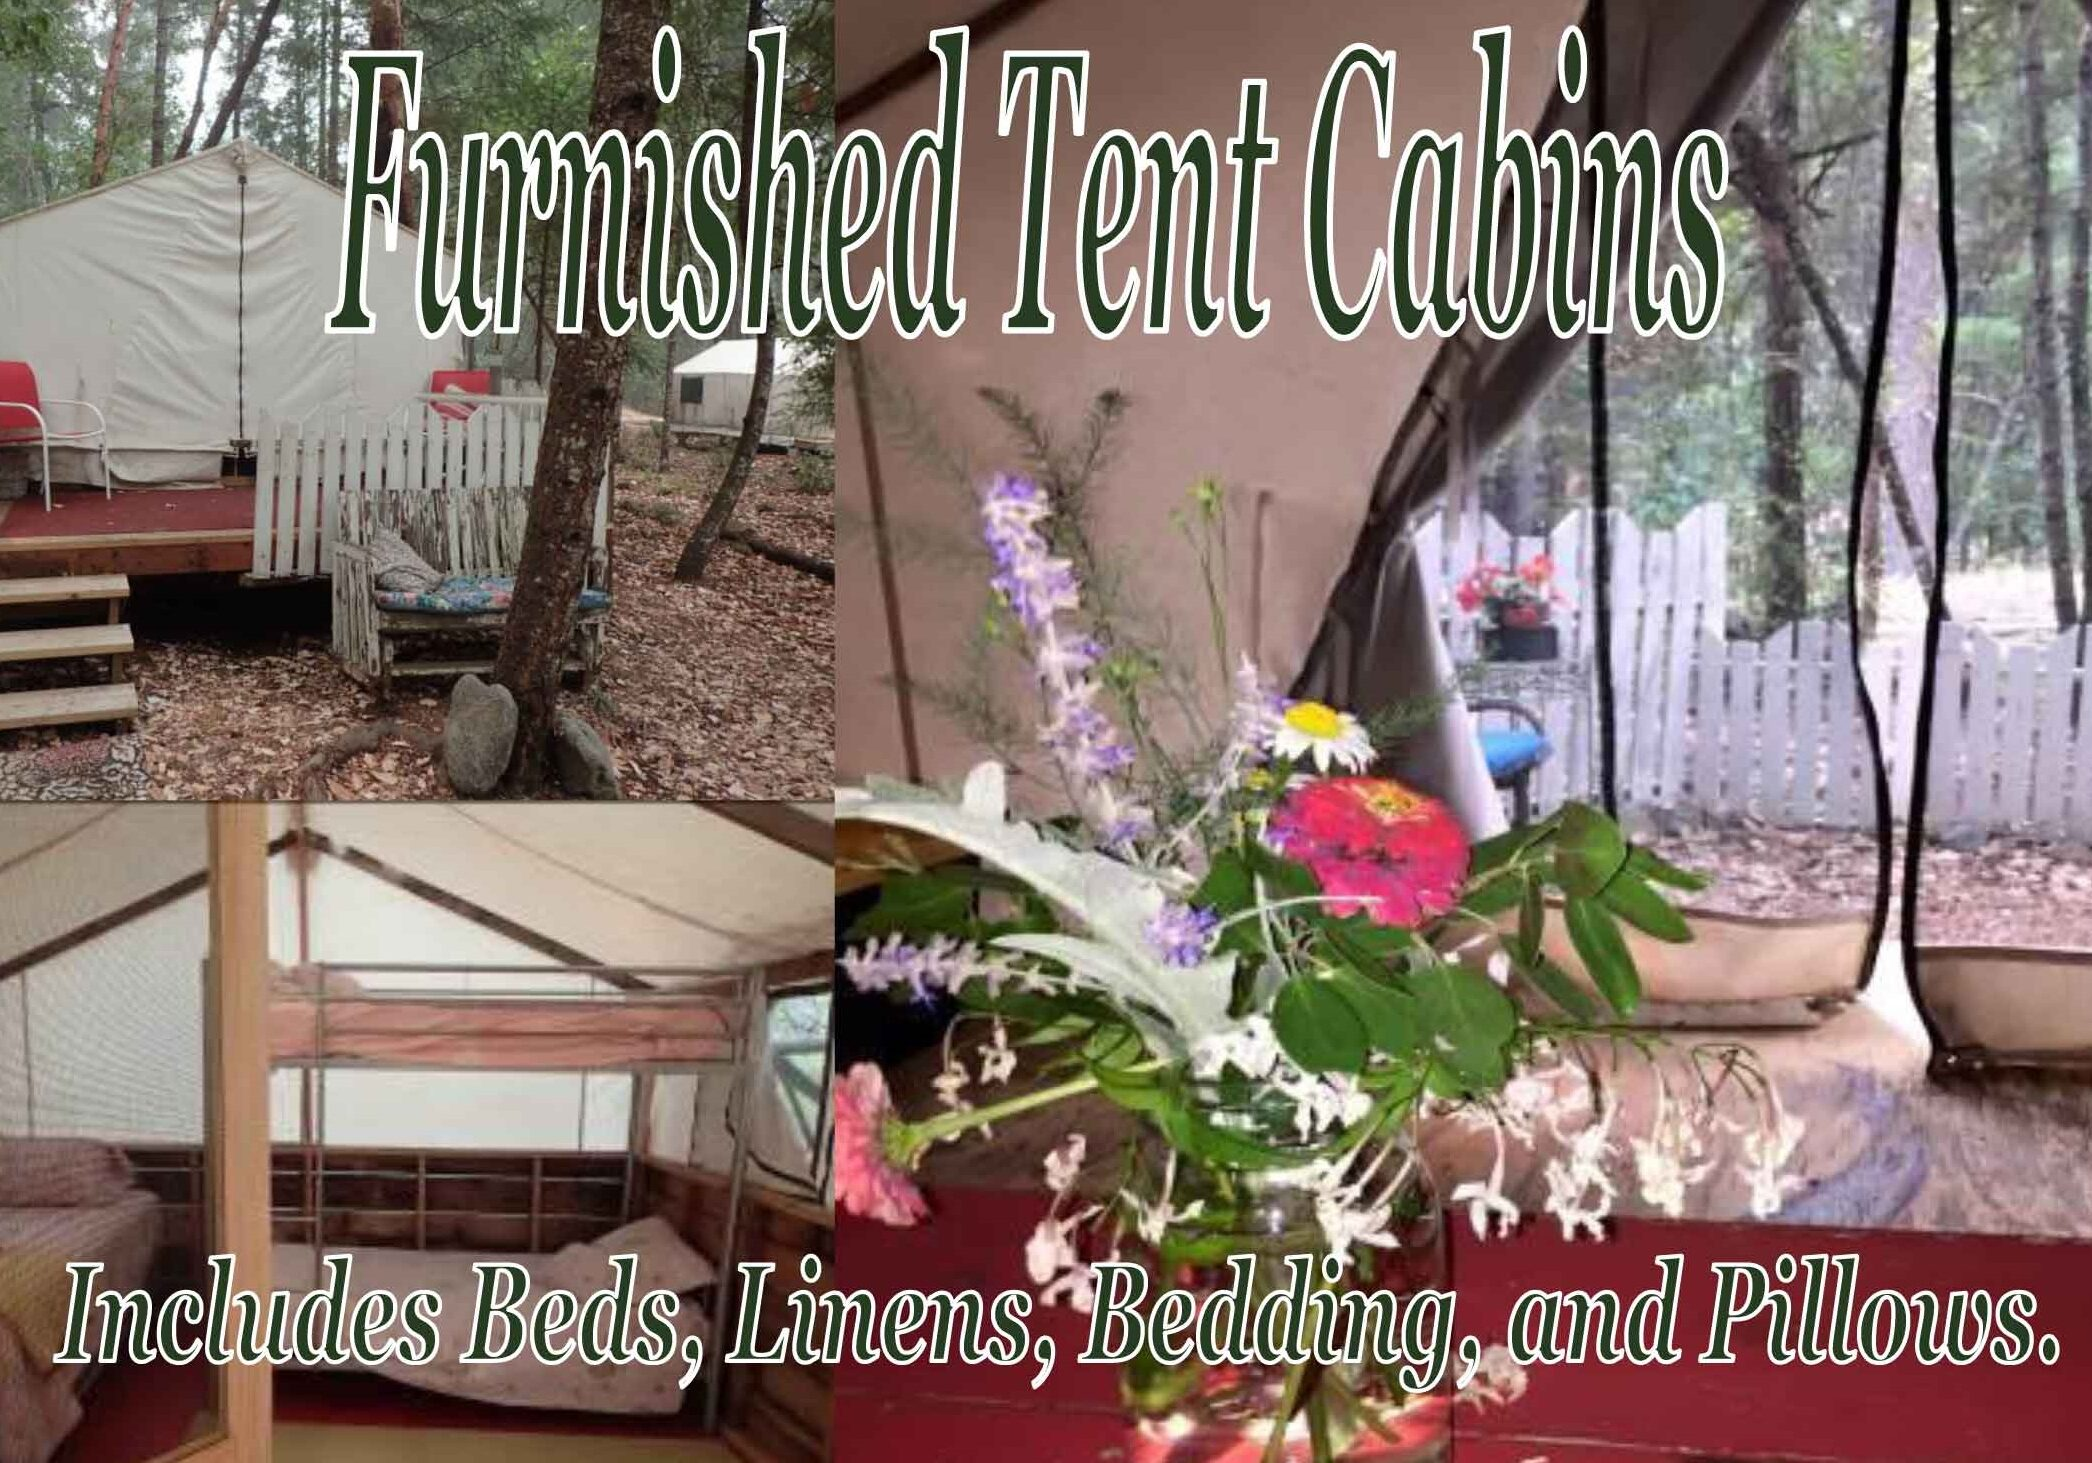 Furnished Tent Cabins